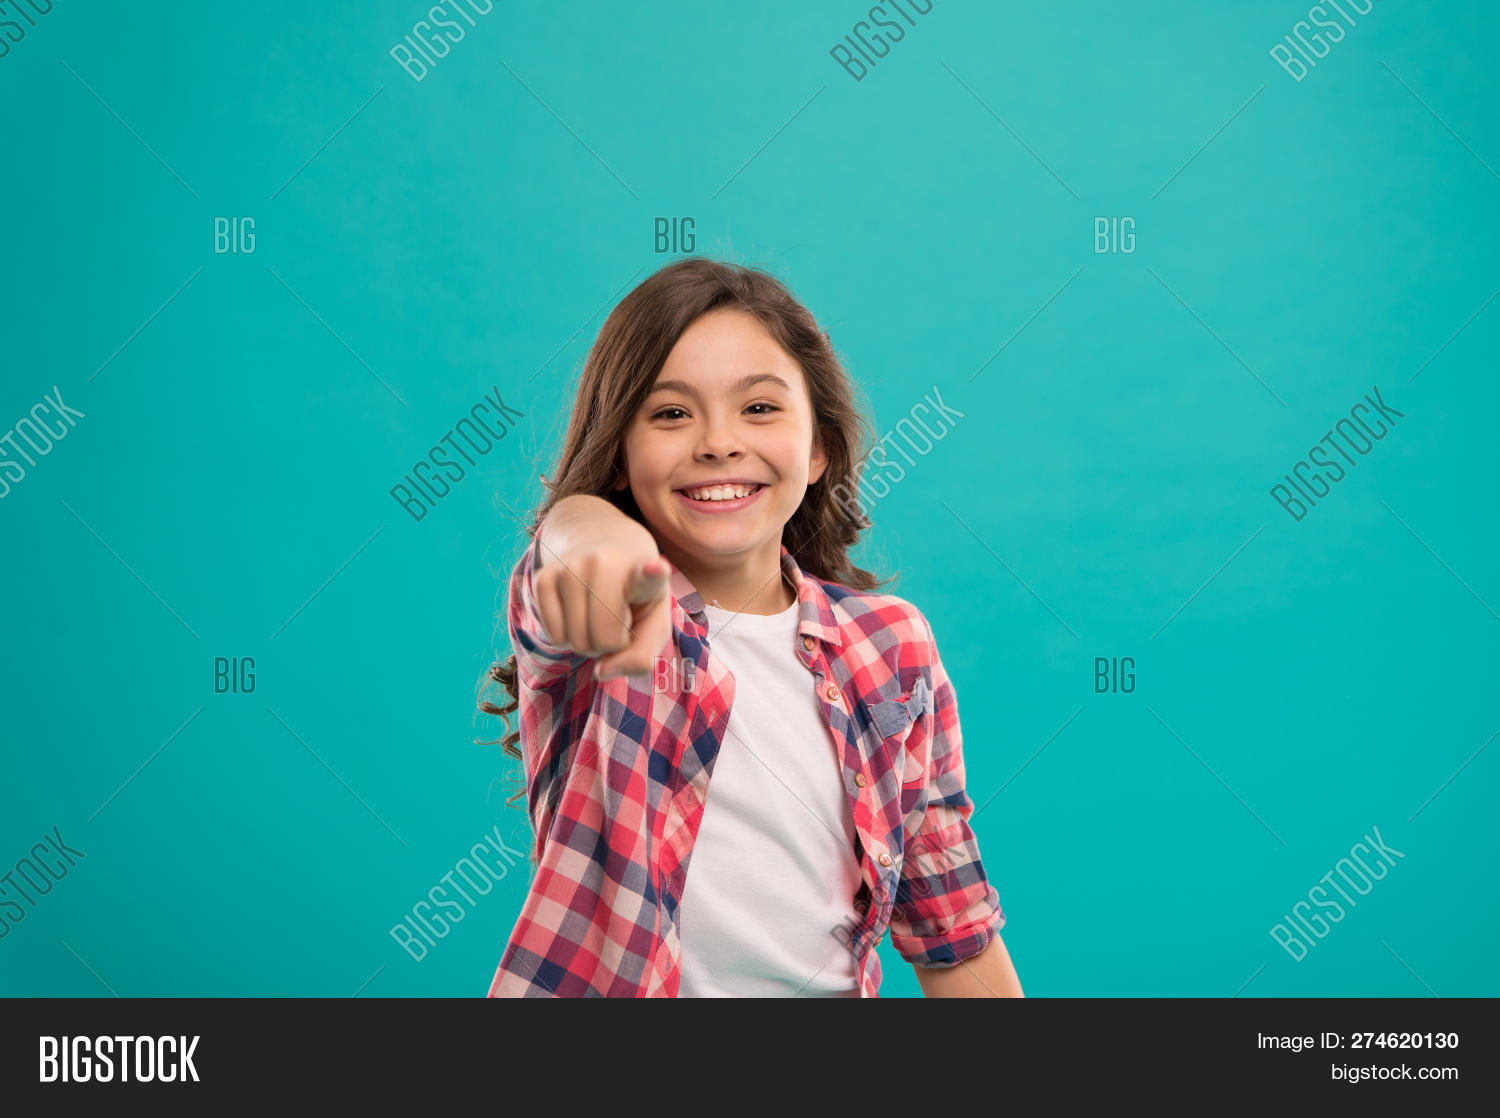 adorable,baby,background,blue,bright,casual,cheerful,child,childhood,cute,excited,face,family,finger,found,girl,got,hair,happy,idea,imagination,important,innovation,inspiration,invention,is,kid,little,long,look,love,new,out,over,point,pointing,power,recommend,small,smile,solution,stand,success,this